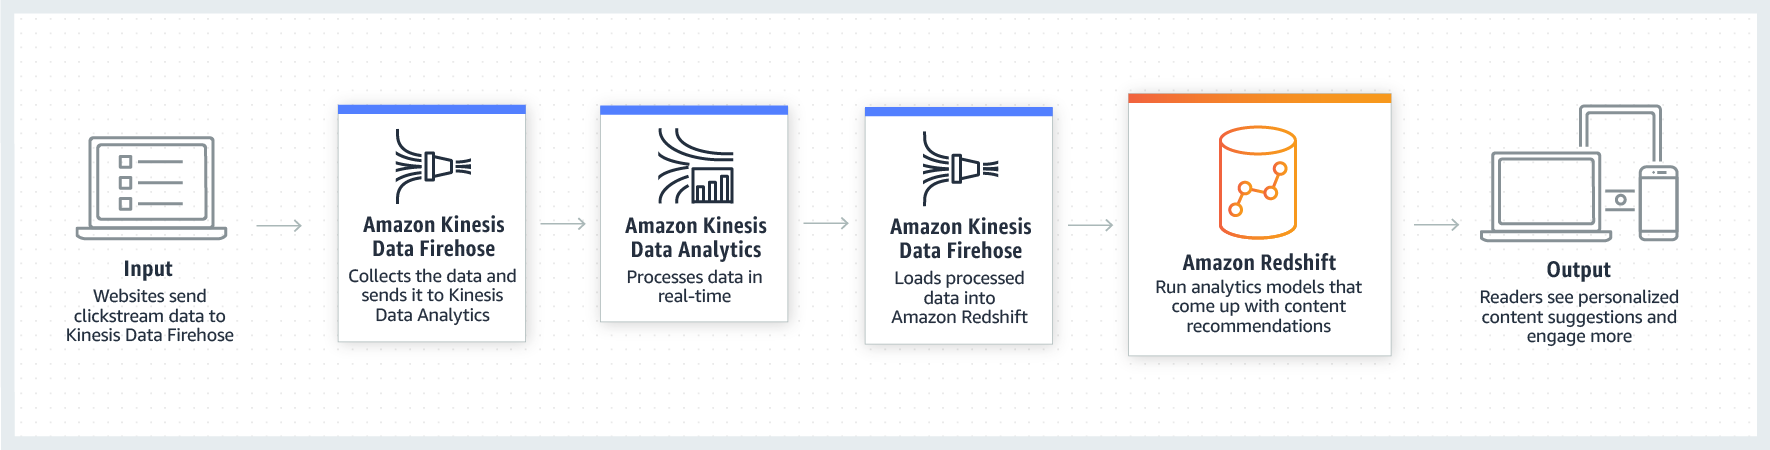 product-page-diagram-AWS-Redshift-Launch_Real-time-Streaming-Analytics@1.5x